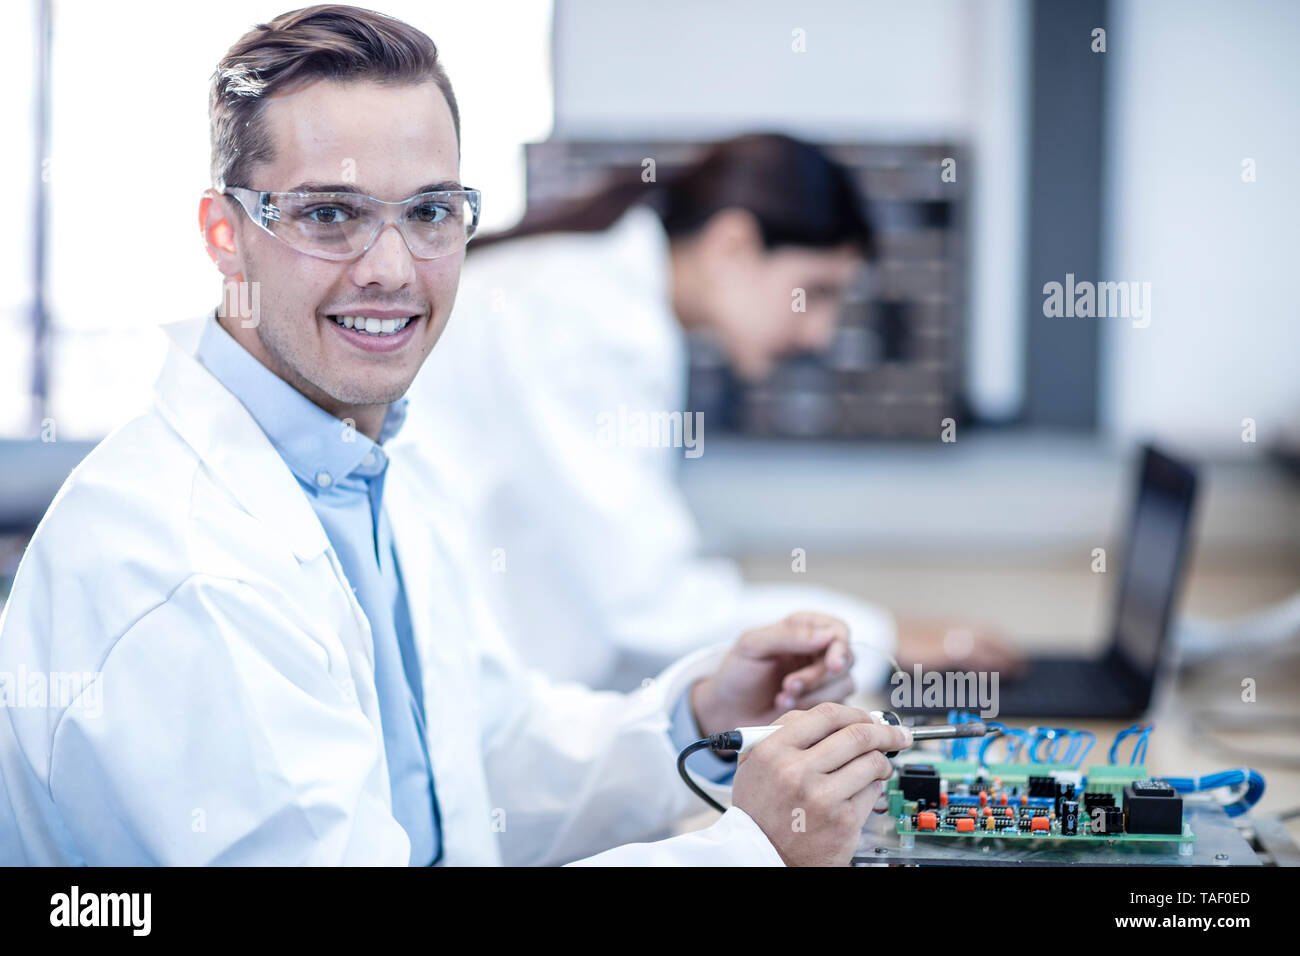 Portrait of smiling technician working on motherboard - Stock Image